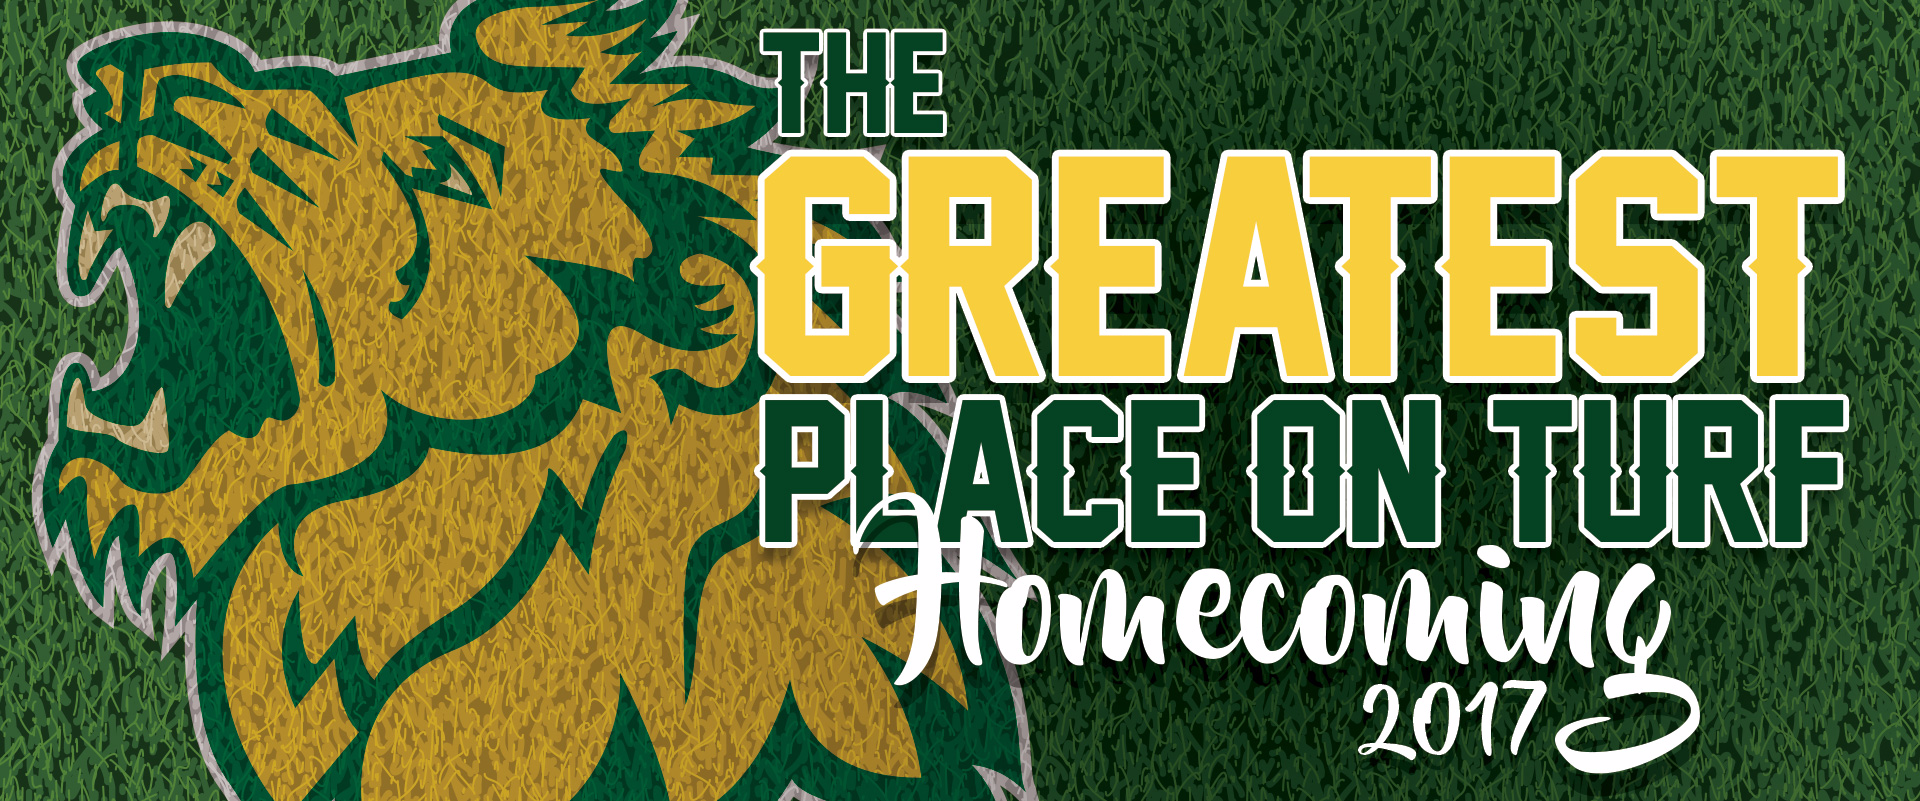 Homecoming contest deadlines approaching